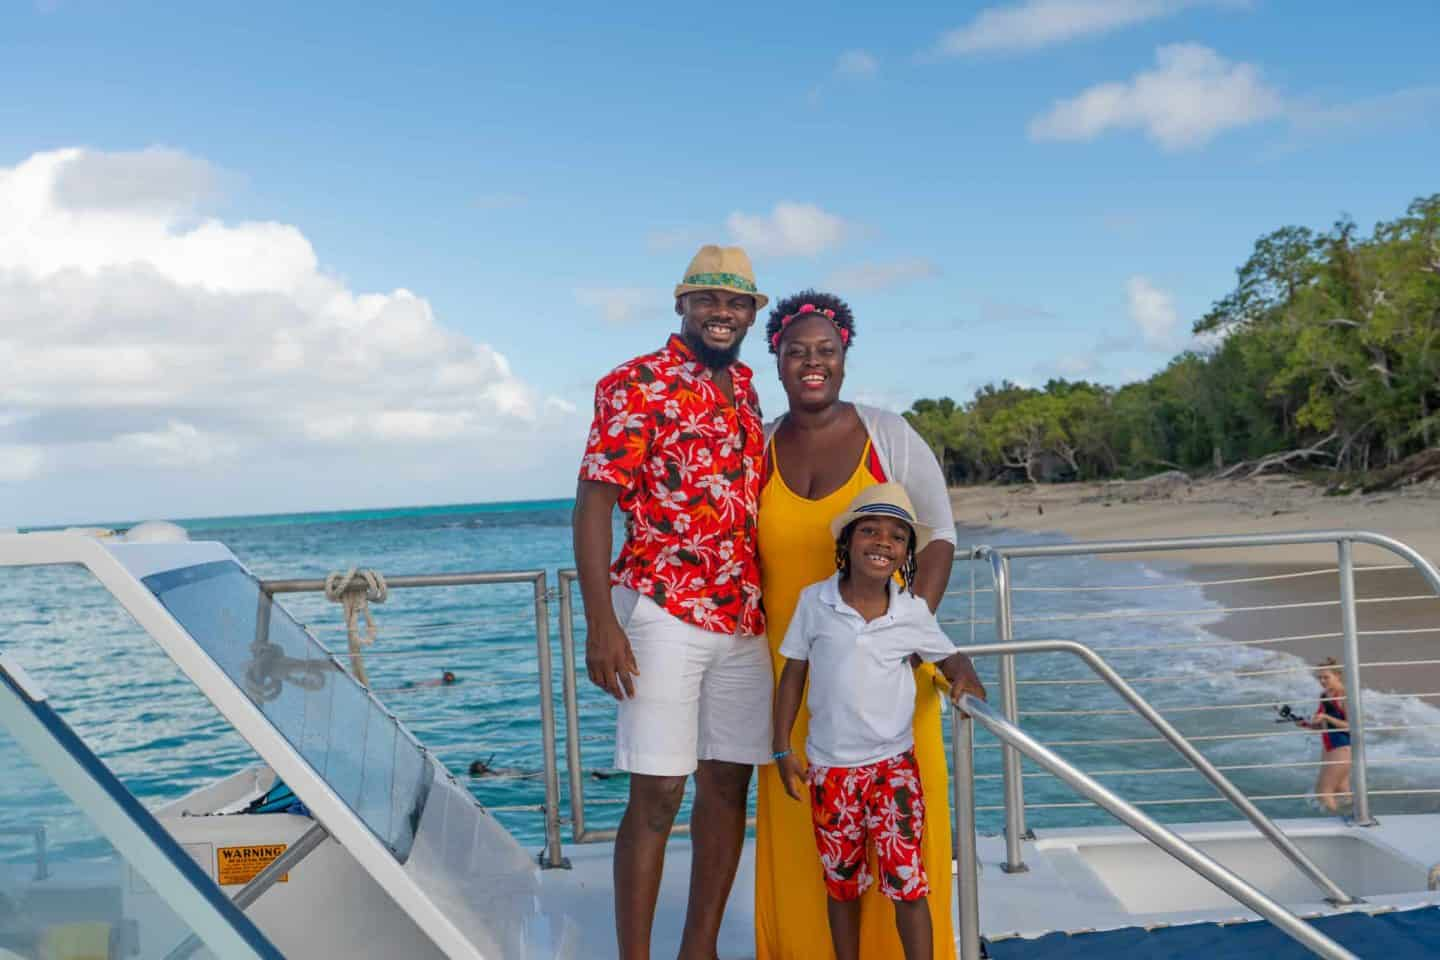 Things To Do In St Croix (US Virgin Islands) With Or Without Kids